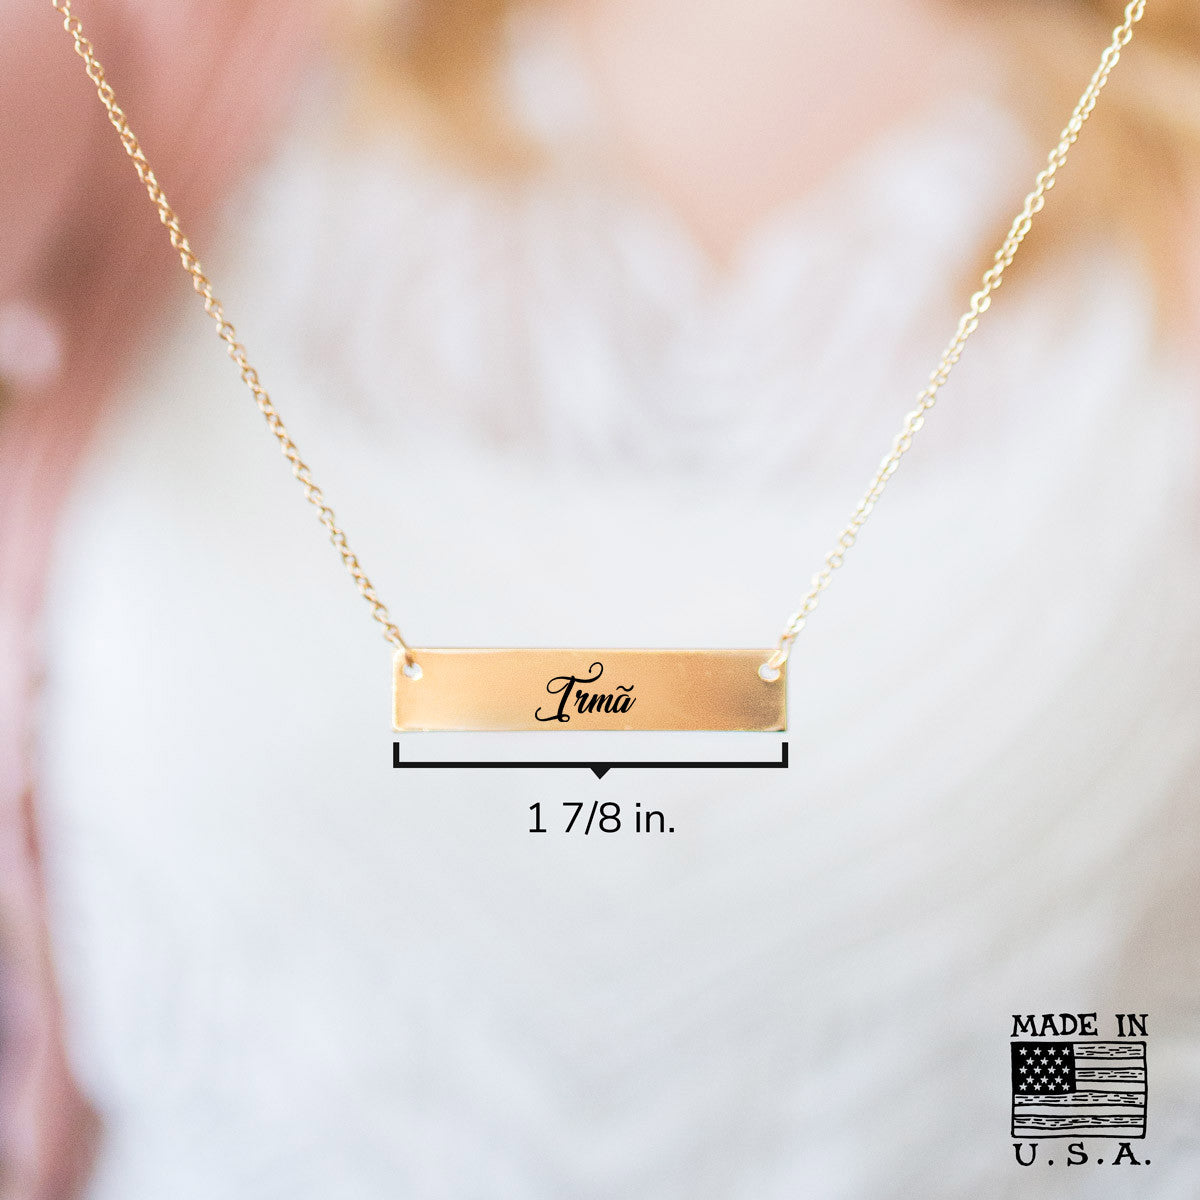 Irmã Gold / Silver Bar Necklace - pipercleo.com